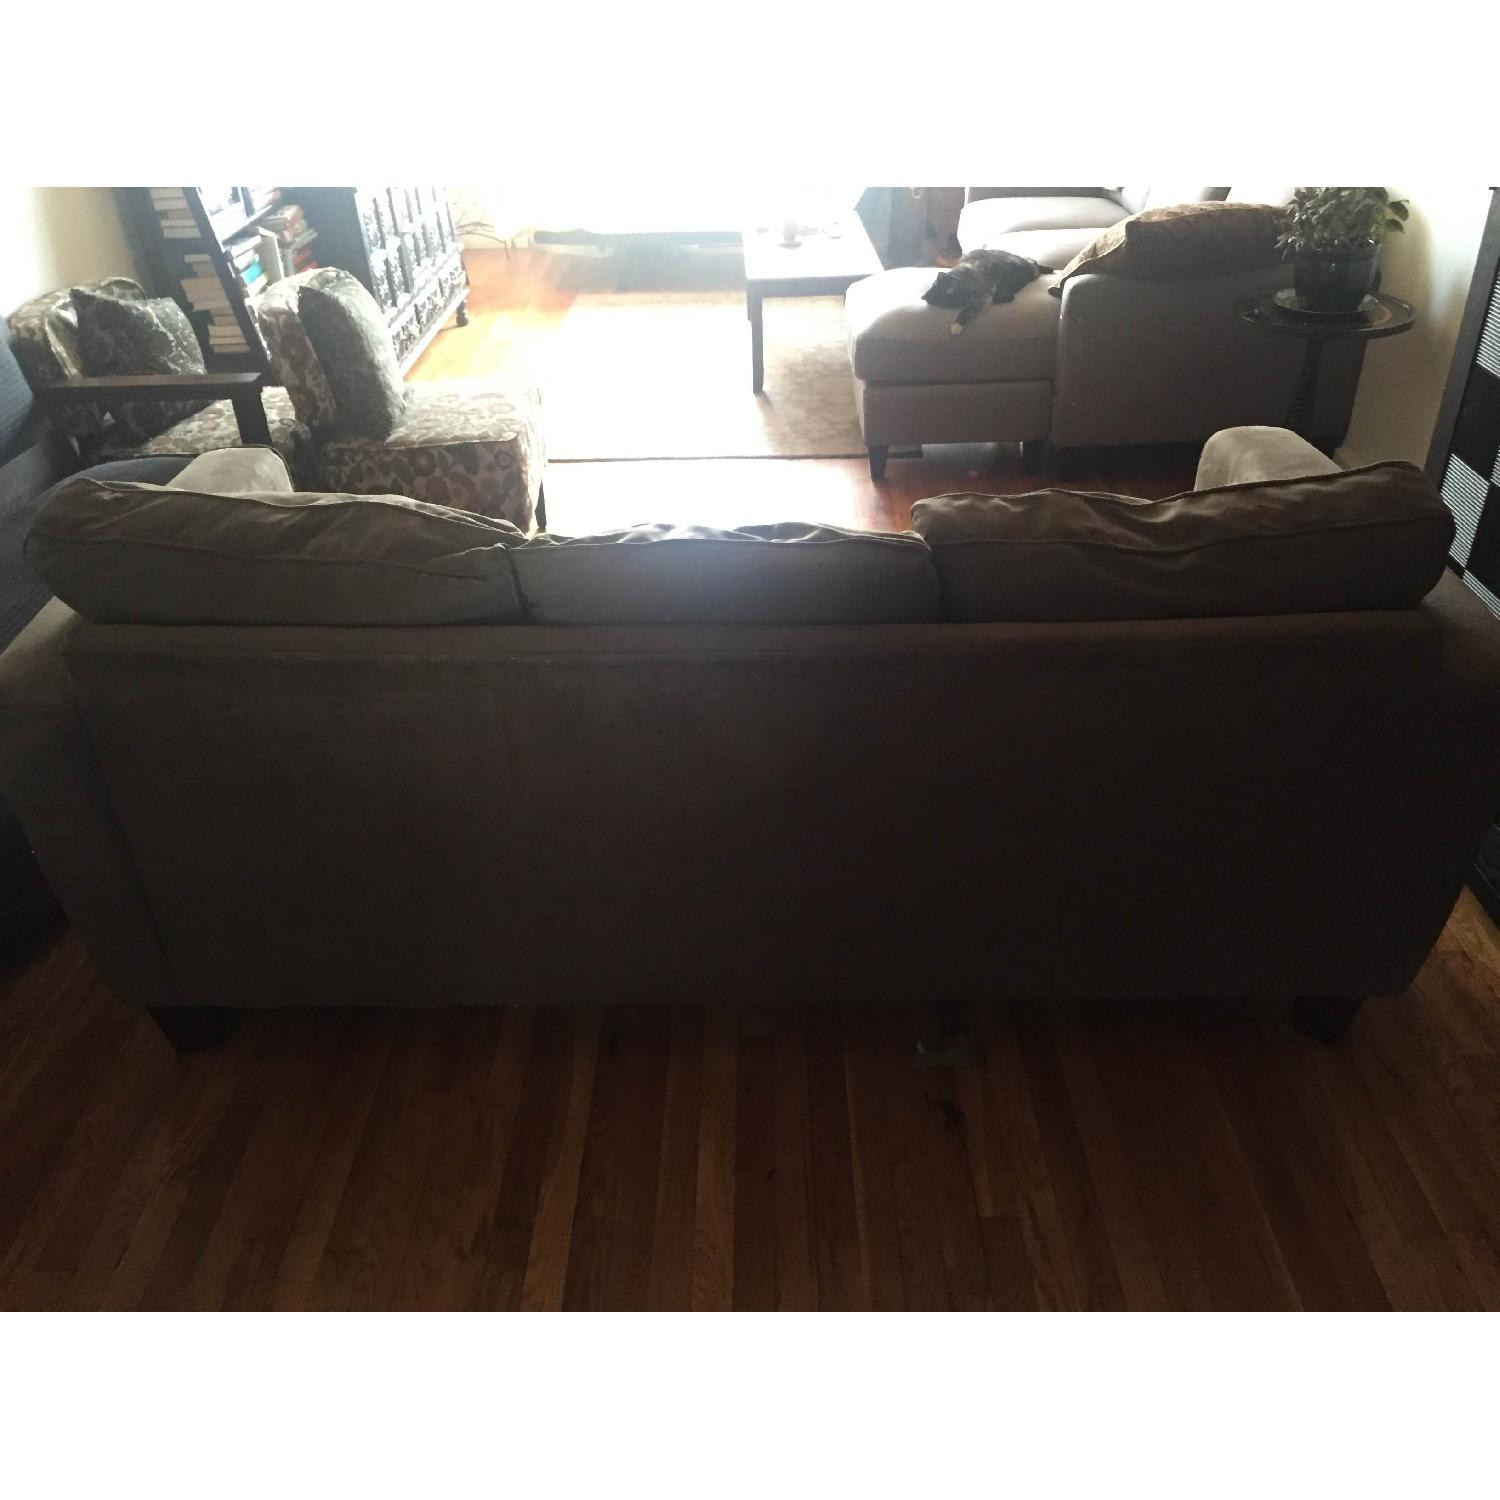 Olive Microsuede 3-Seater Couch & Ottoman - image-3